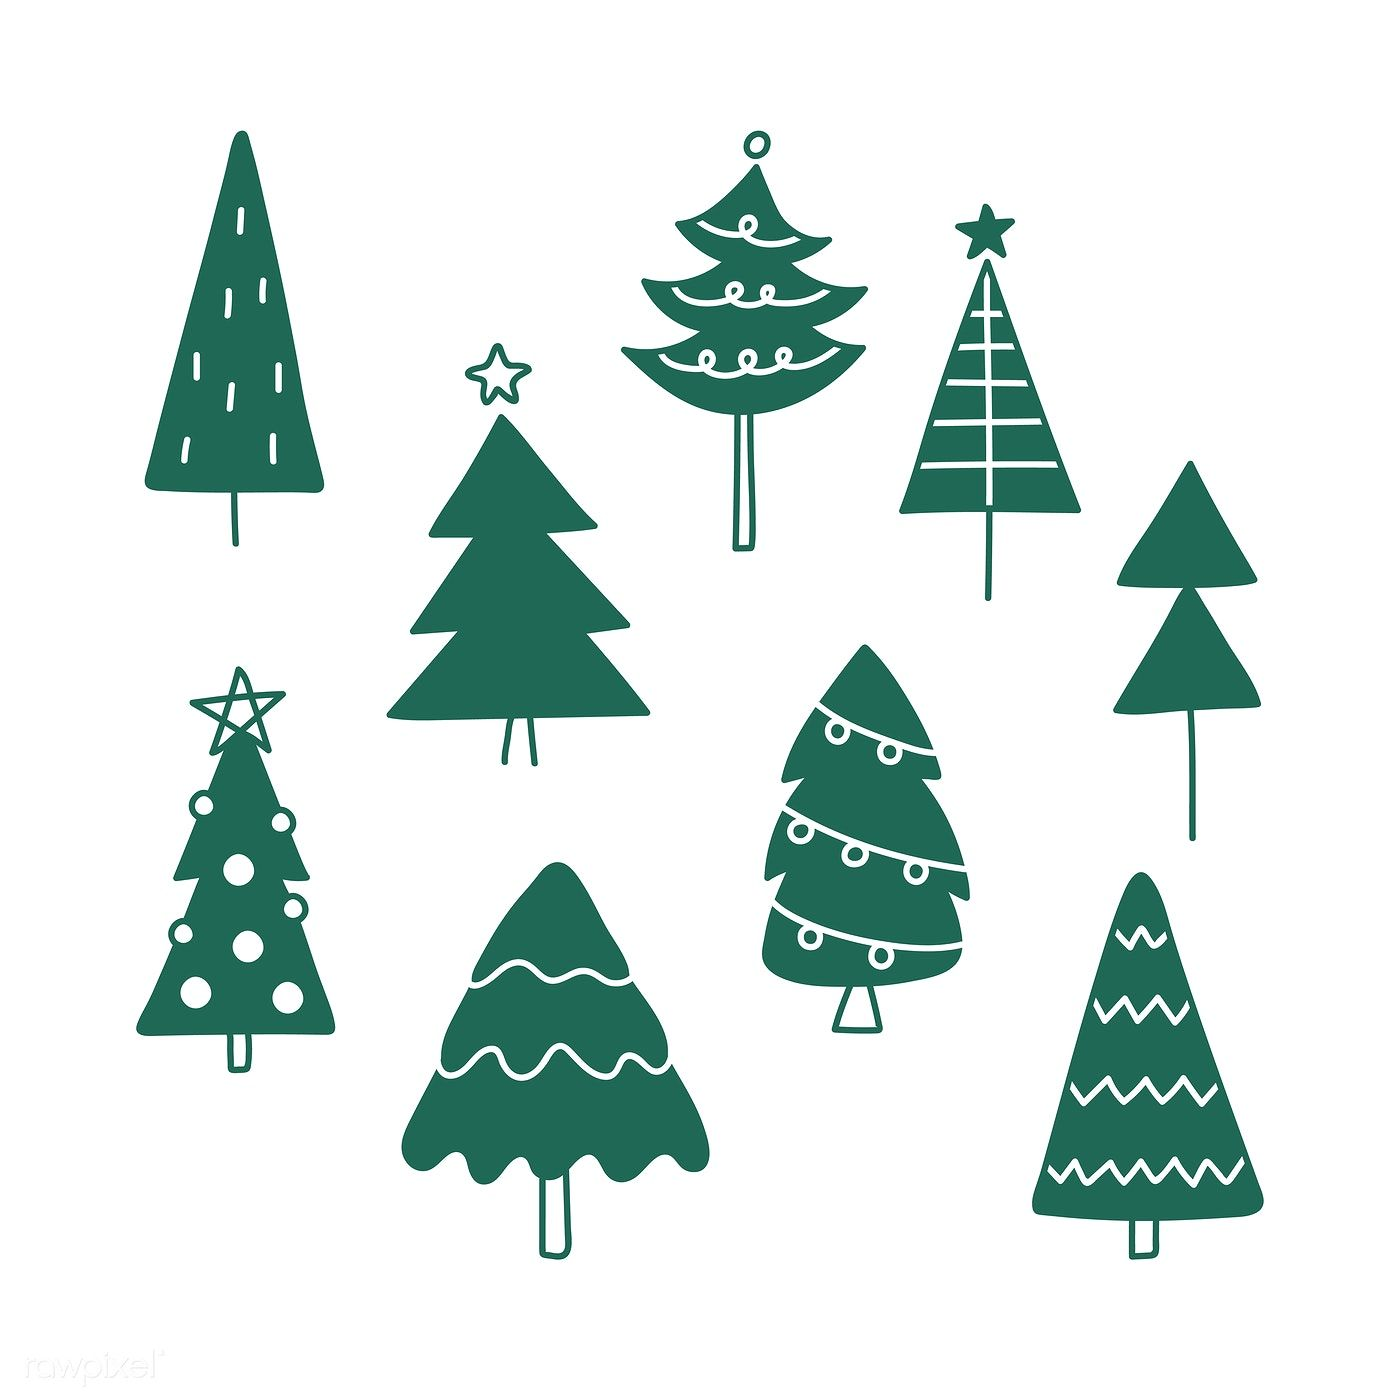 Christmas Pine Tree Pattern Background Drawing Doodle Style Free Image By Rawpixel Com Christmas Tree Drawing Tree Drawing Background Drawing